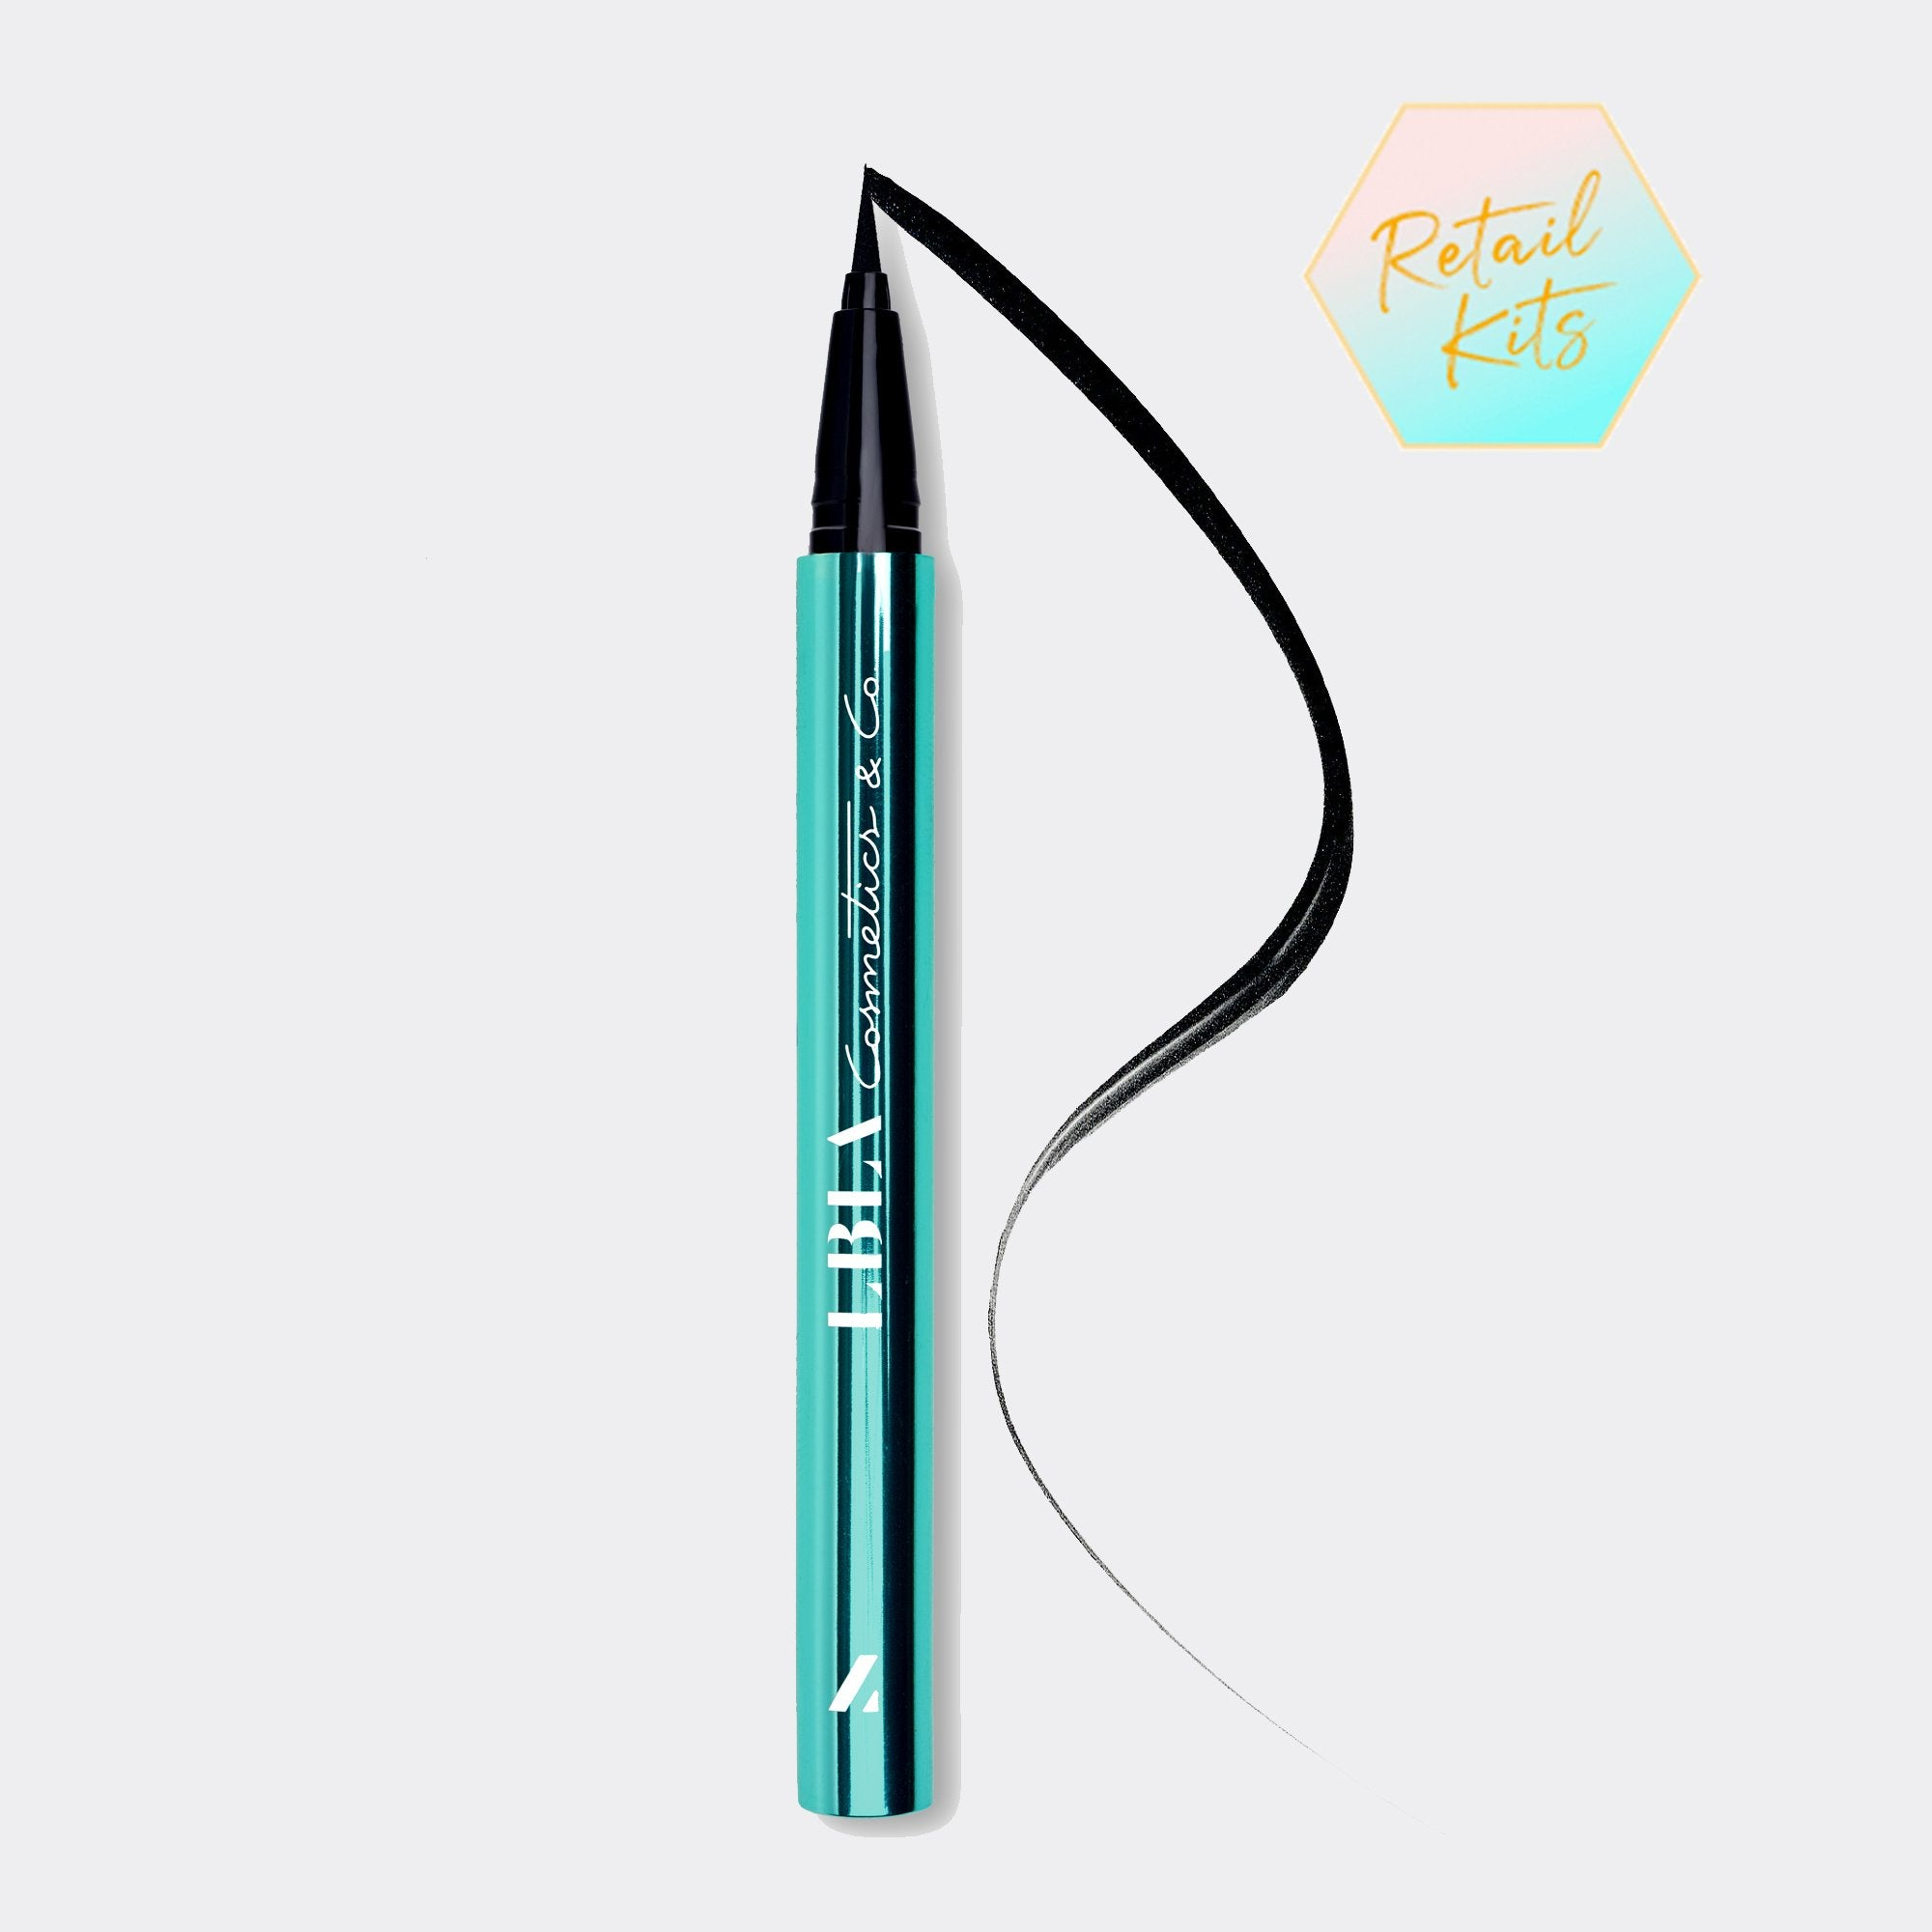 LBLA COSMETICS & CO. EVERLASTING EYELINER Eyelash extension safe liquid eyeliner